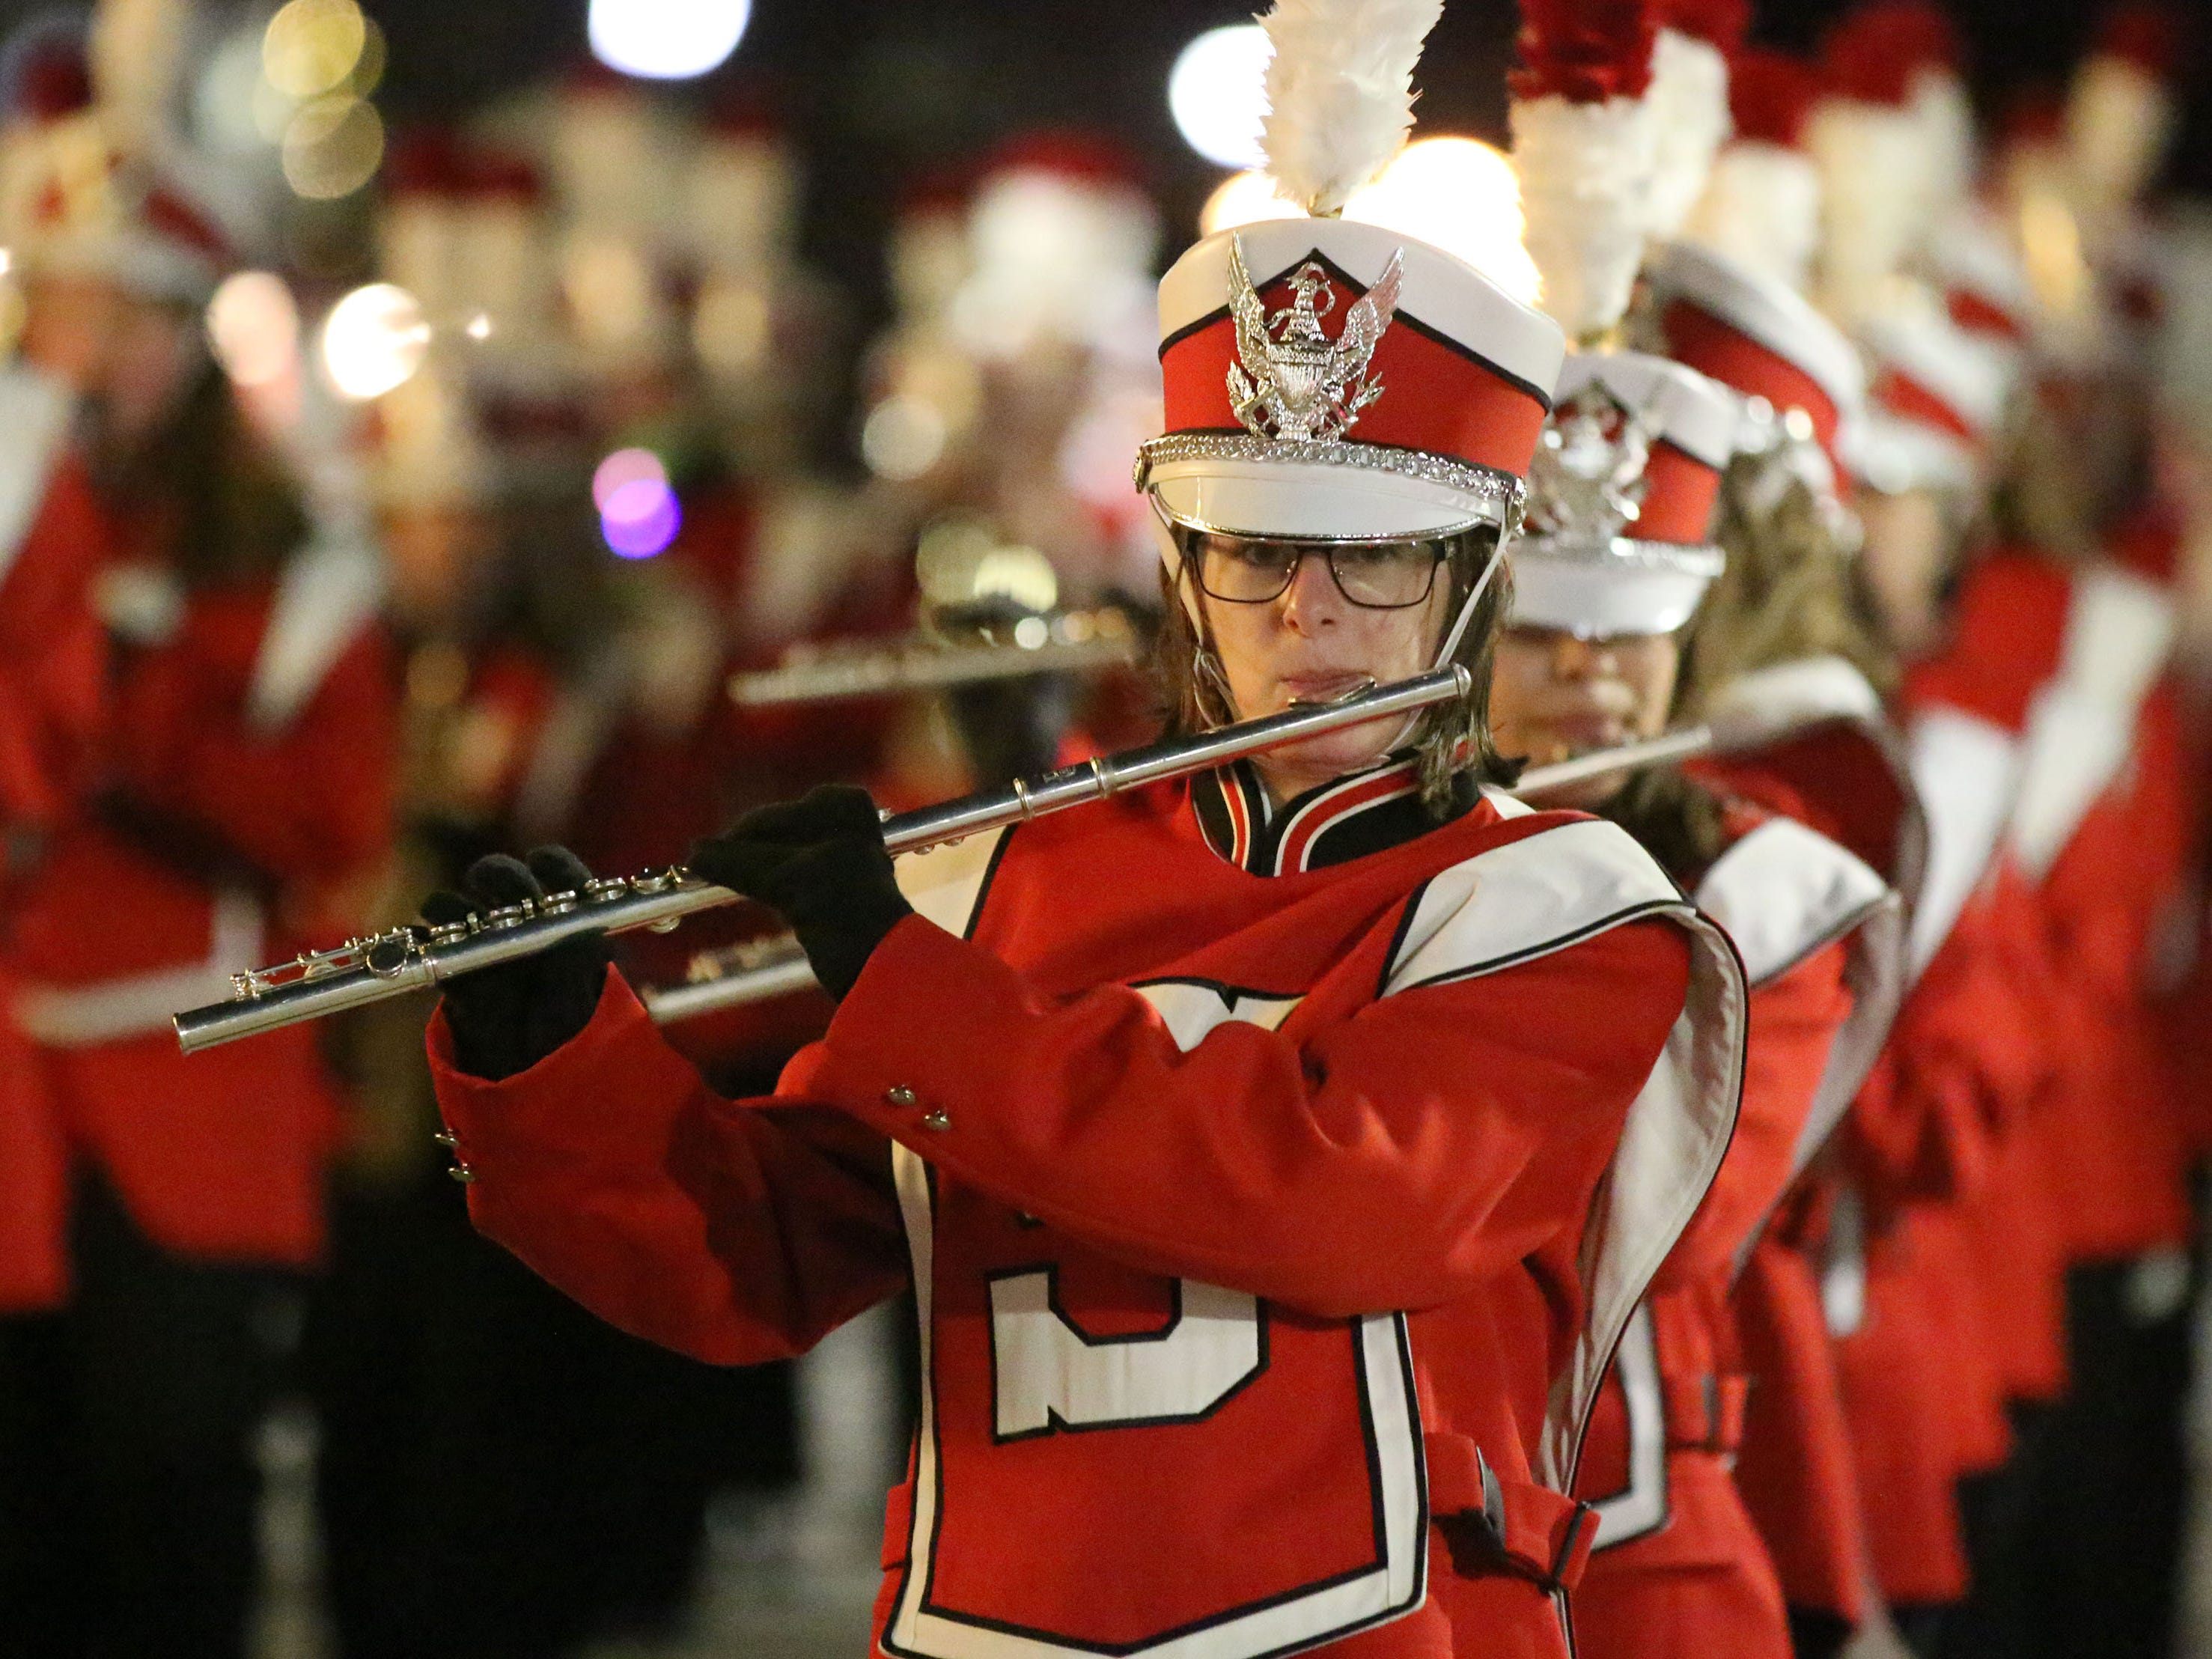 Sheboygan South's flute section performs during the 26th Annual Jaycees Holiday Parade, Sunday, November 25, 2018 in Sheboygan, Wis.